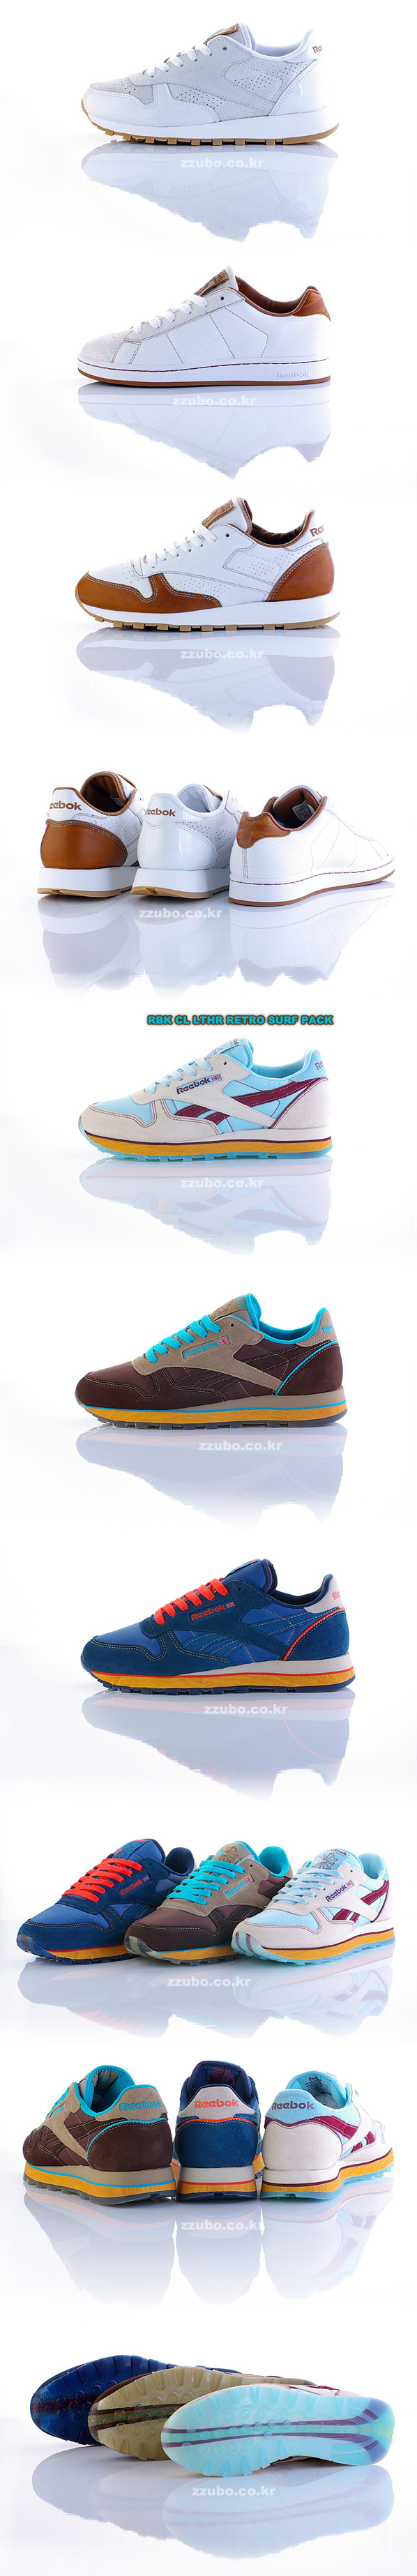 Reebok White Pack and Surf Pack